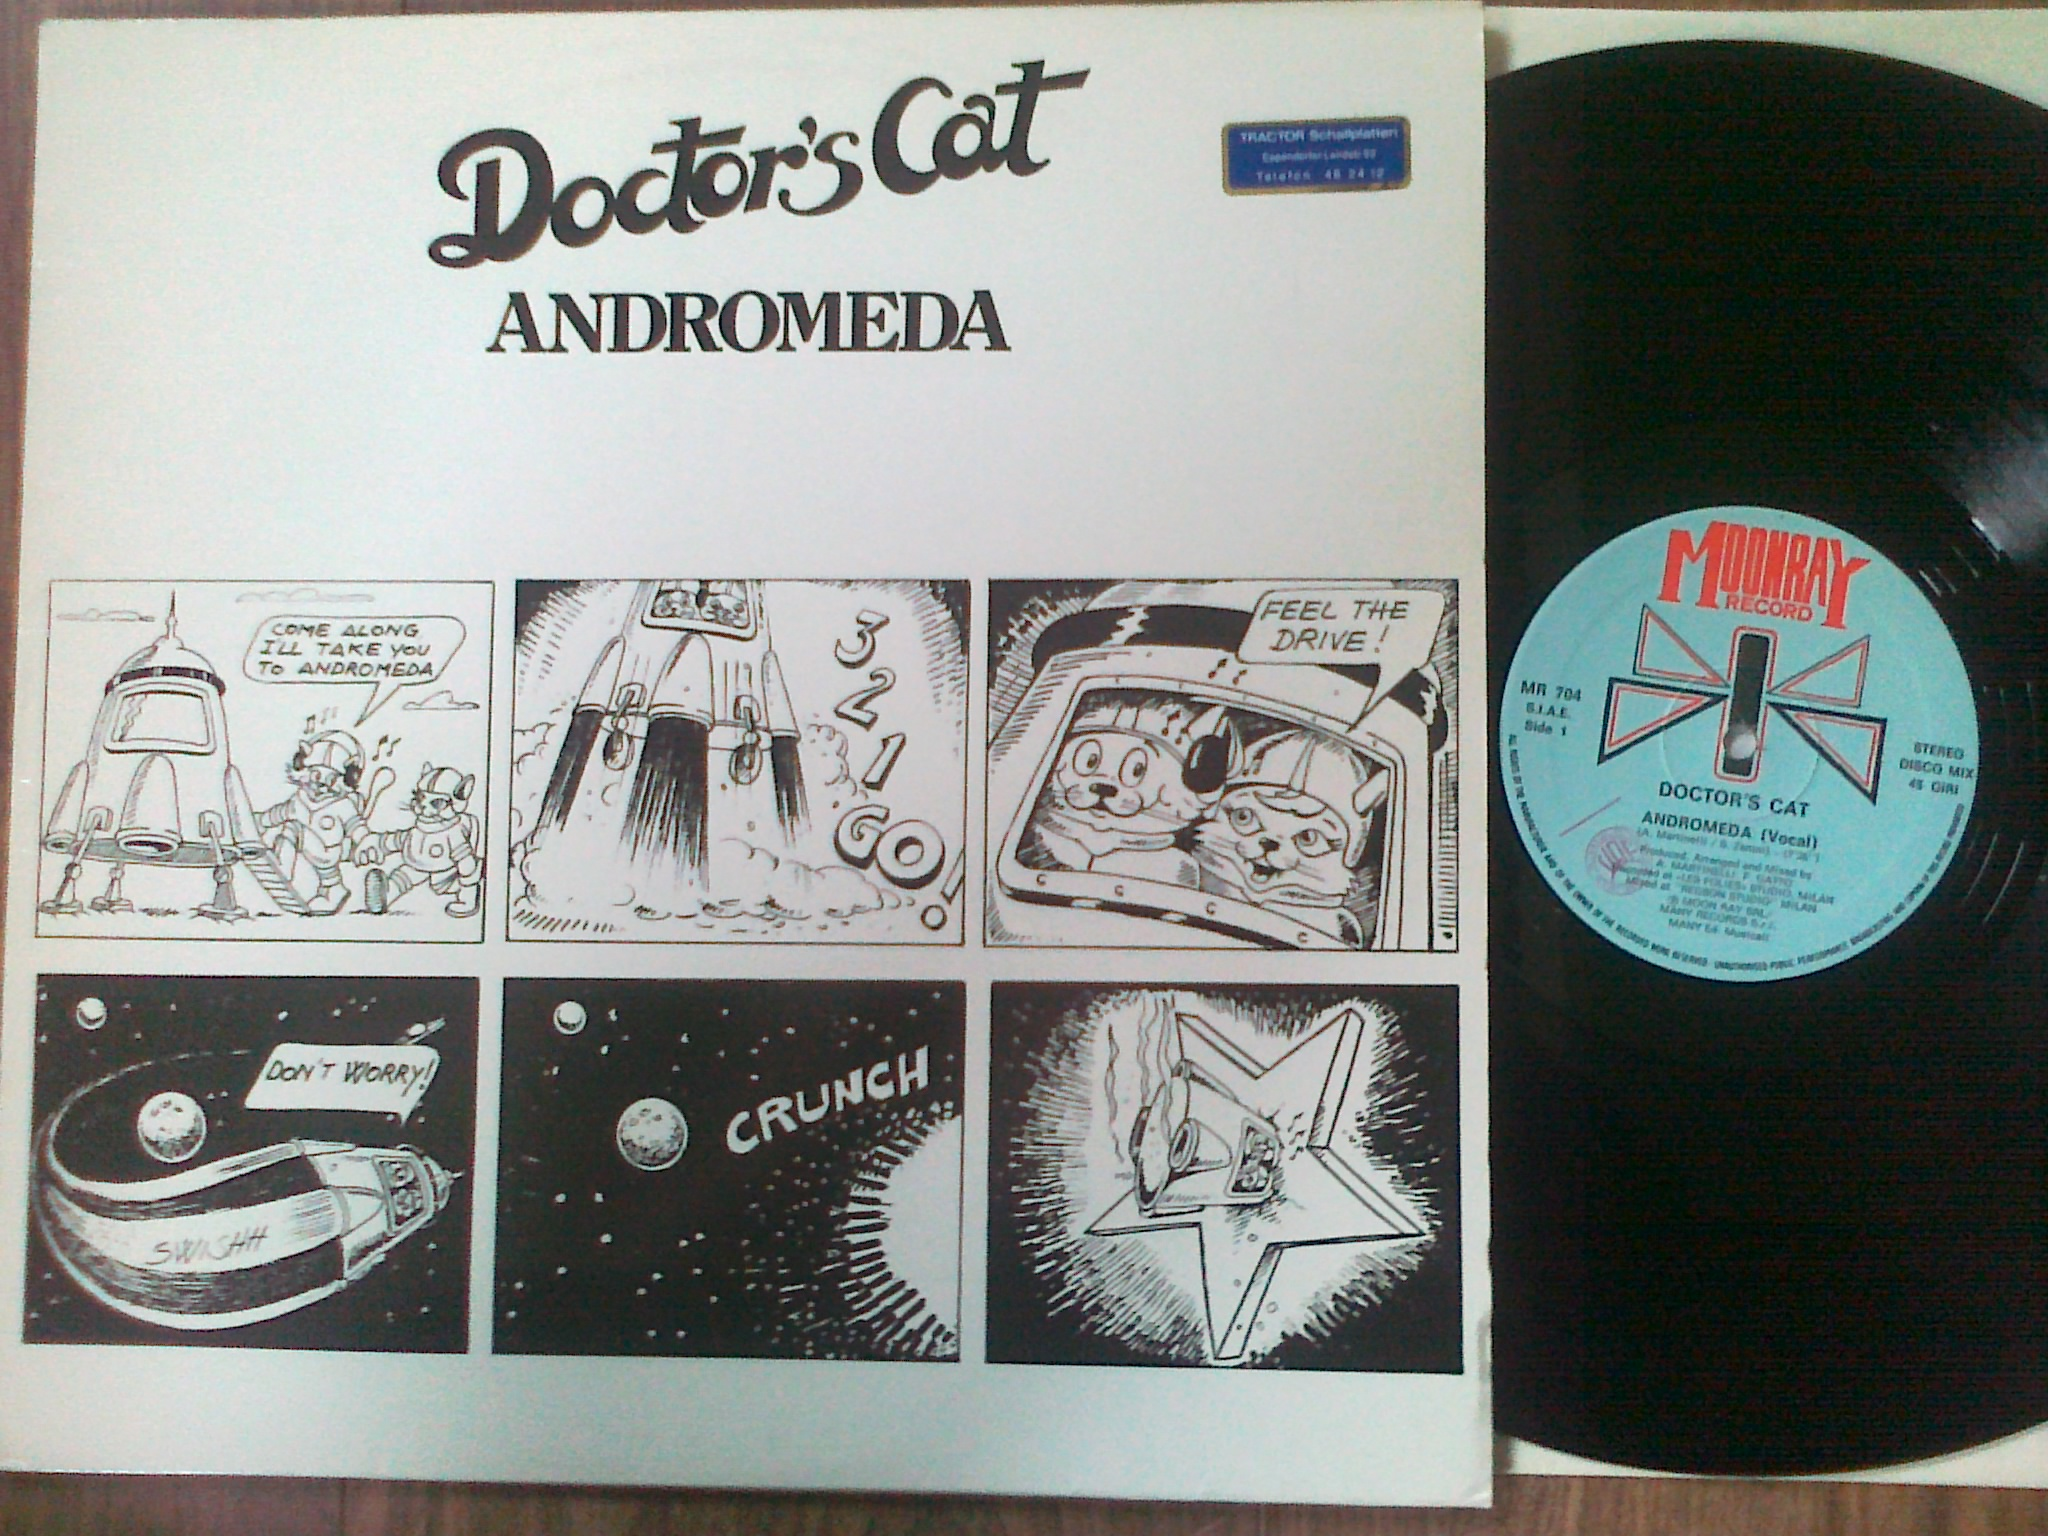 Doctor's Cat - Andromeda